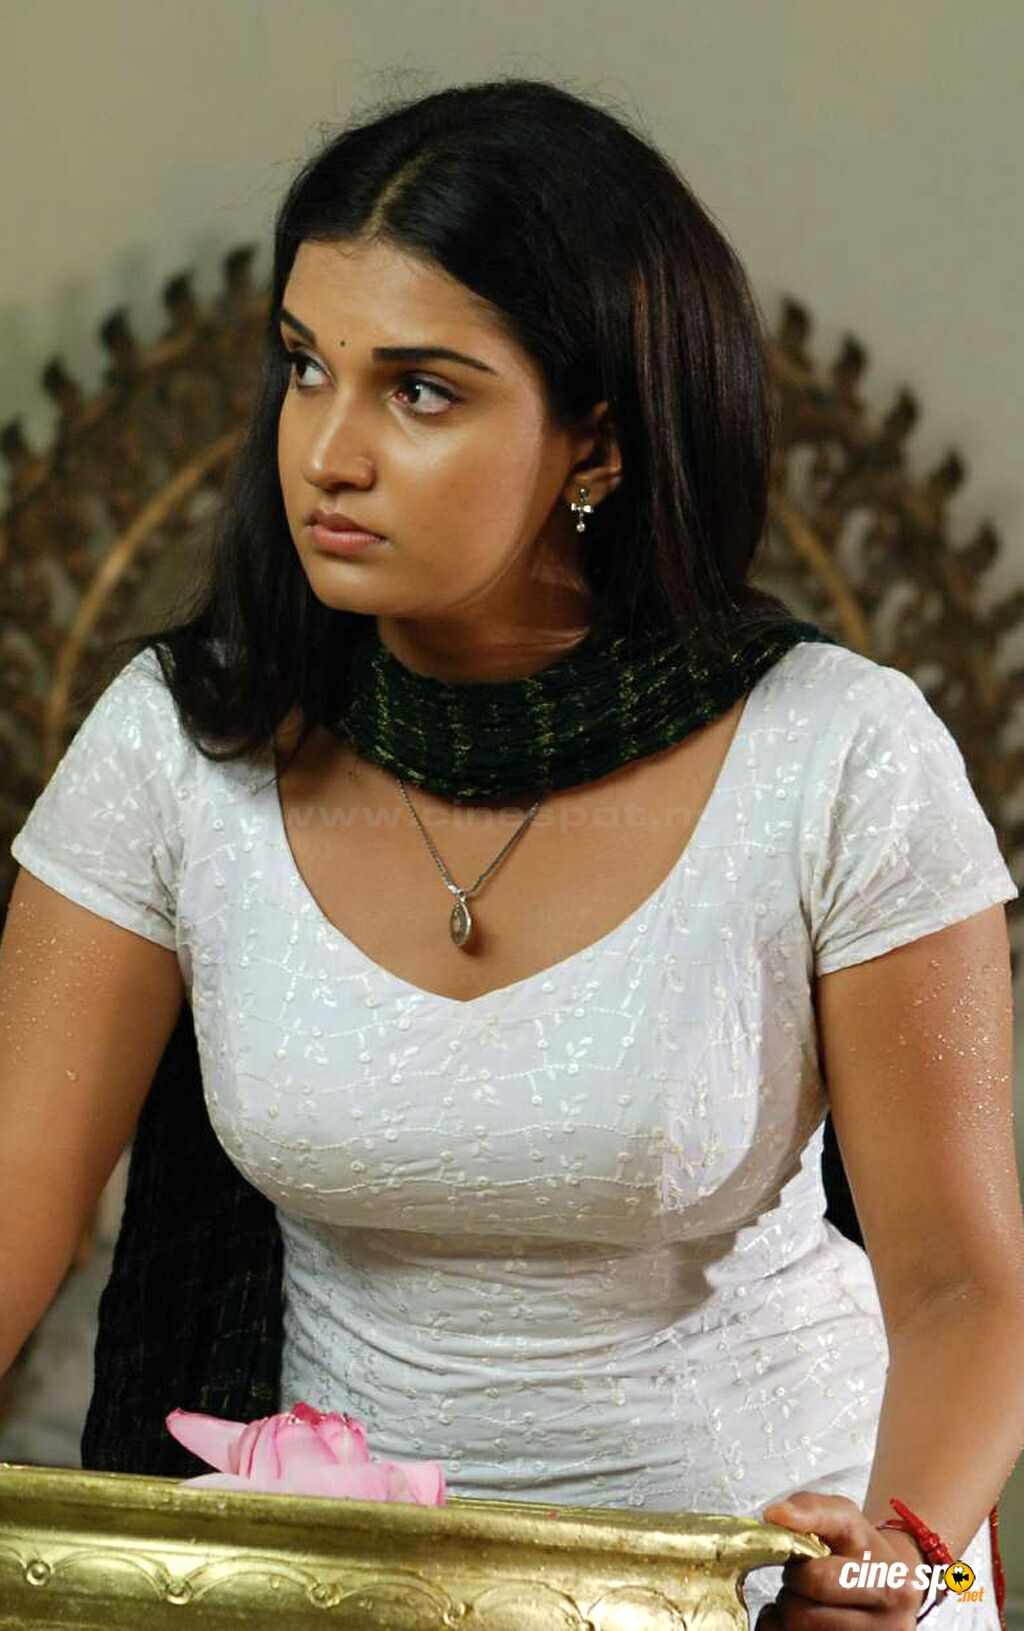 Kerala Chechi Showing Cleavage Through Blouse - Indian